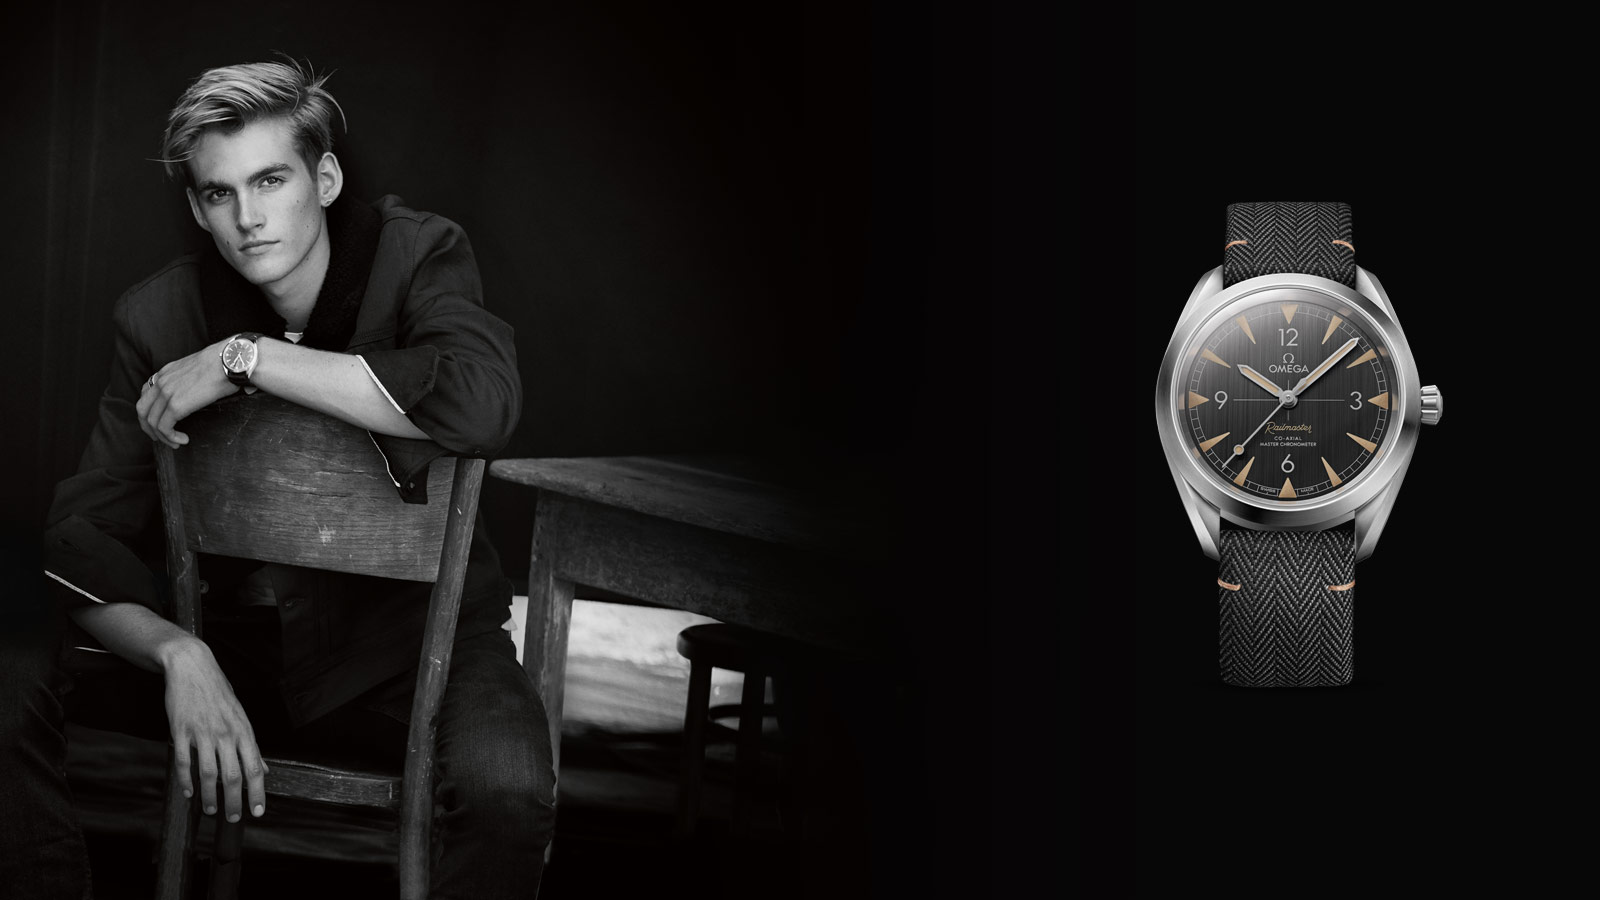 Omega®: Swiss Luxury Watches Since 1848 Carousel 7 - 48448